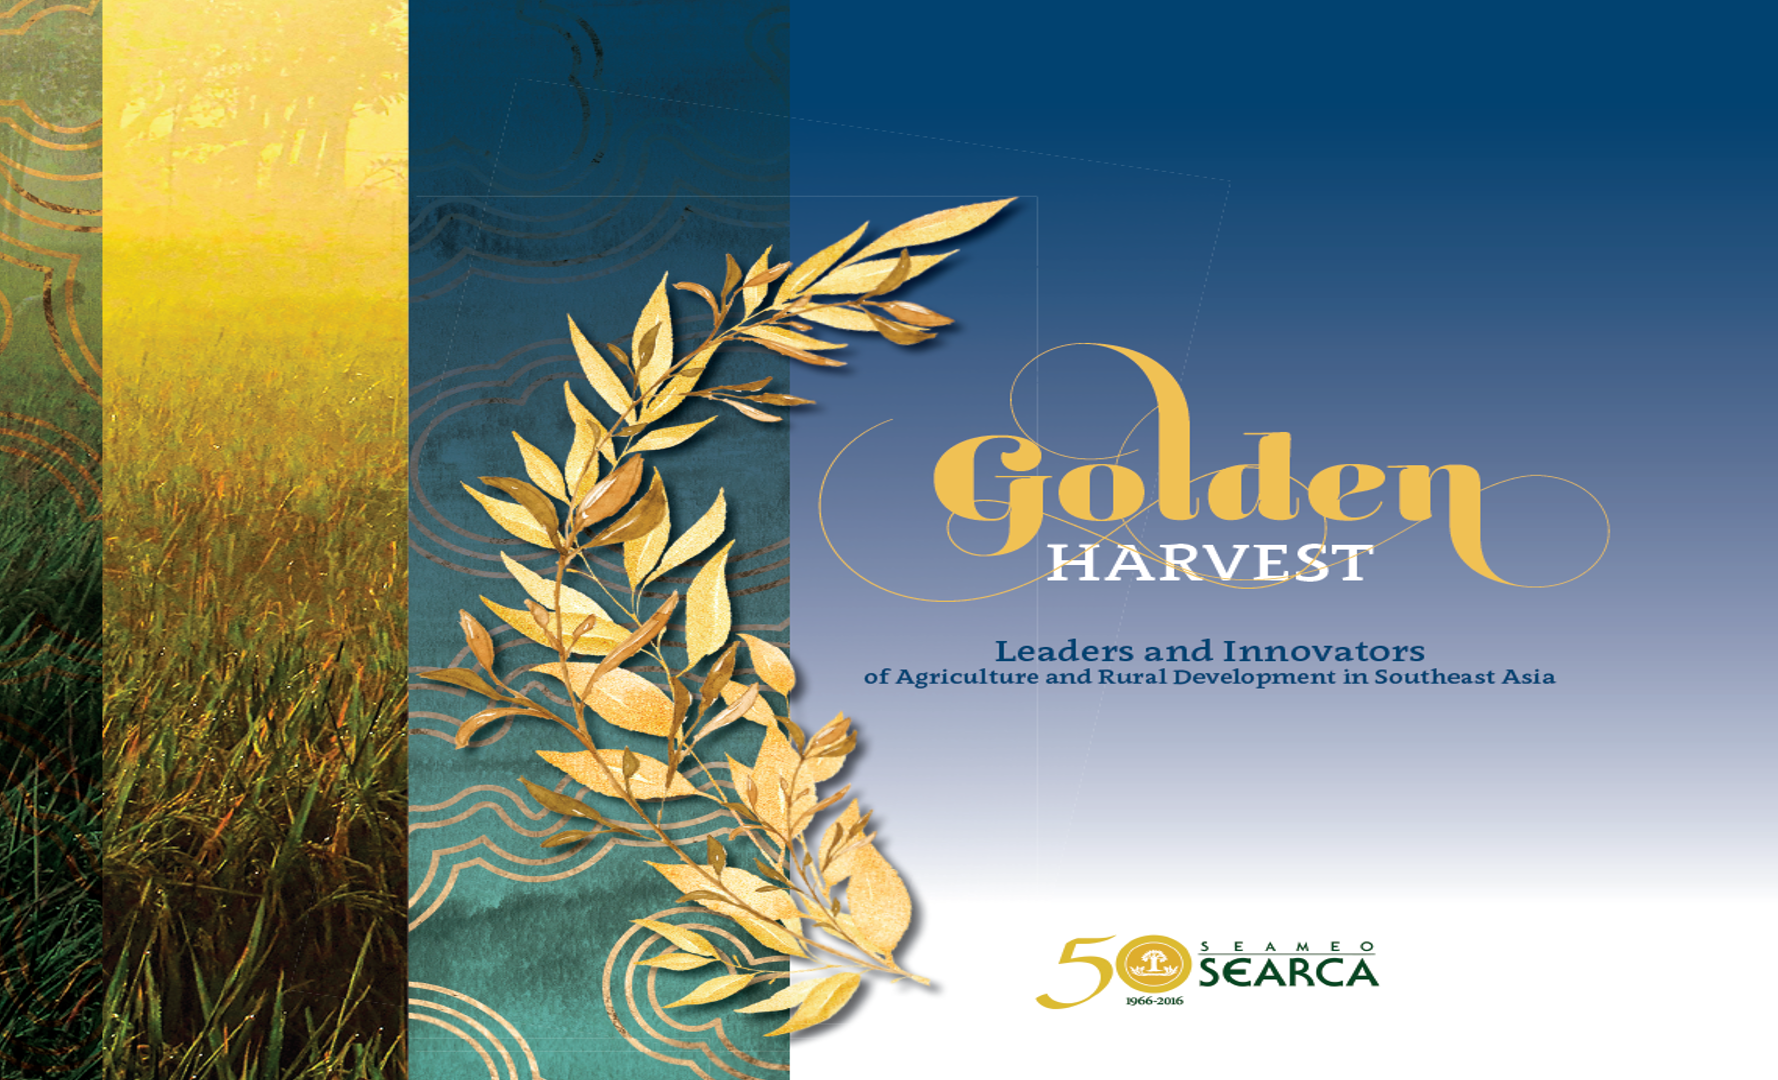 Golden Harvest: Leaders and Innovators of Agriculture and Rural Development in Southeast Asia